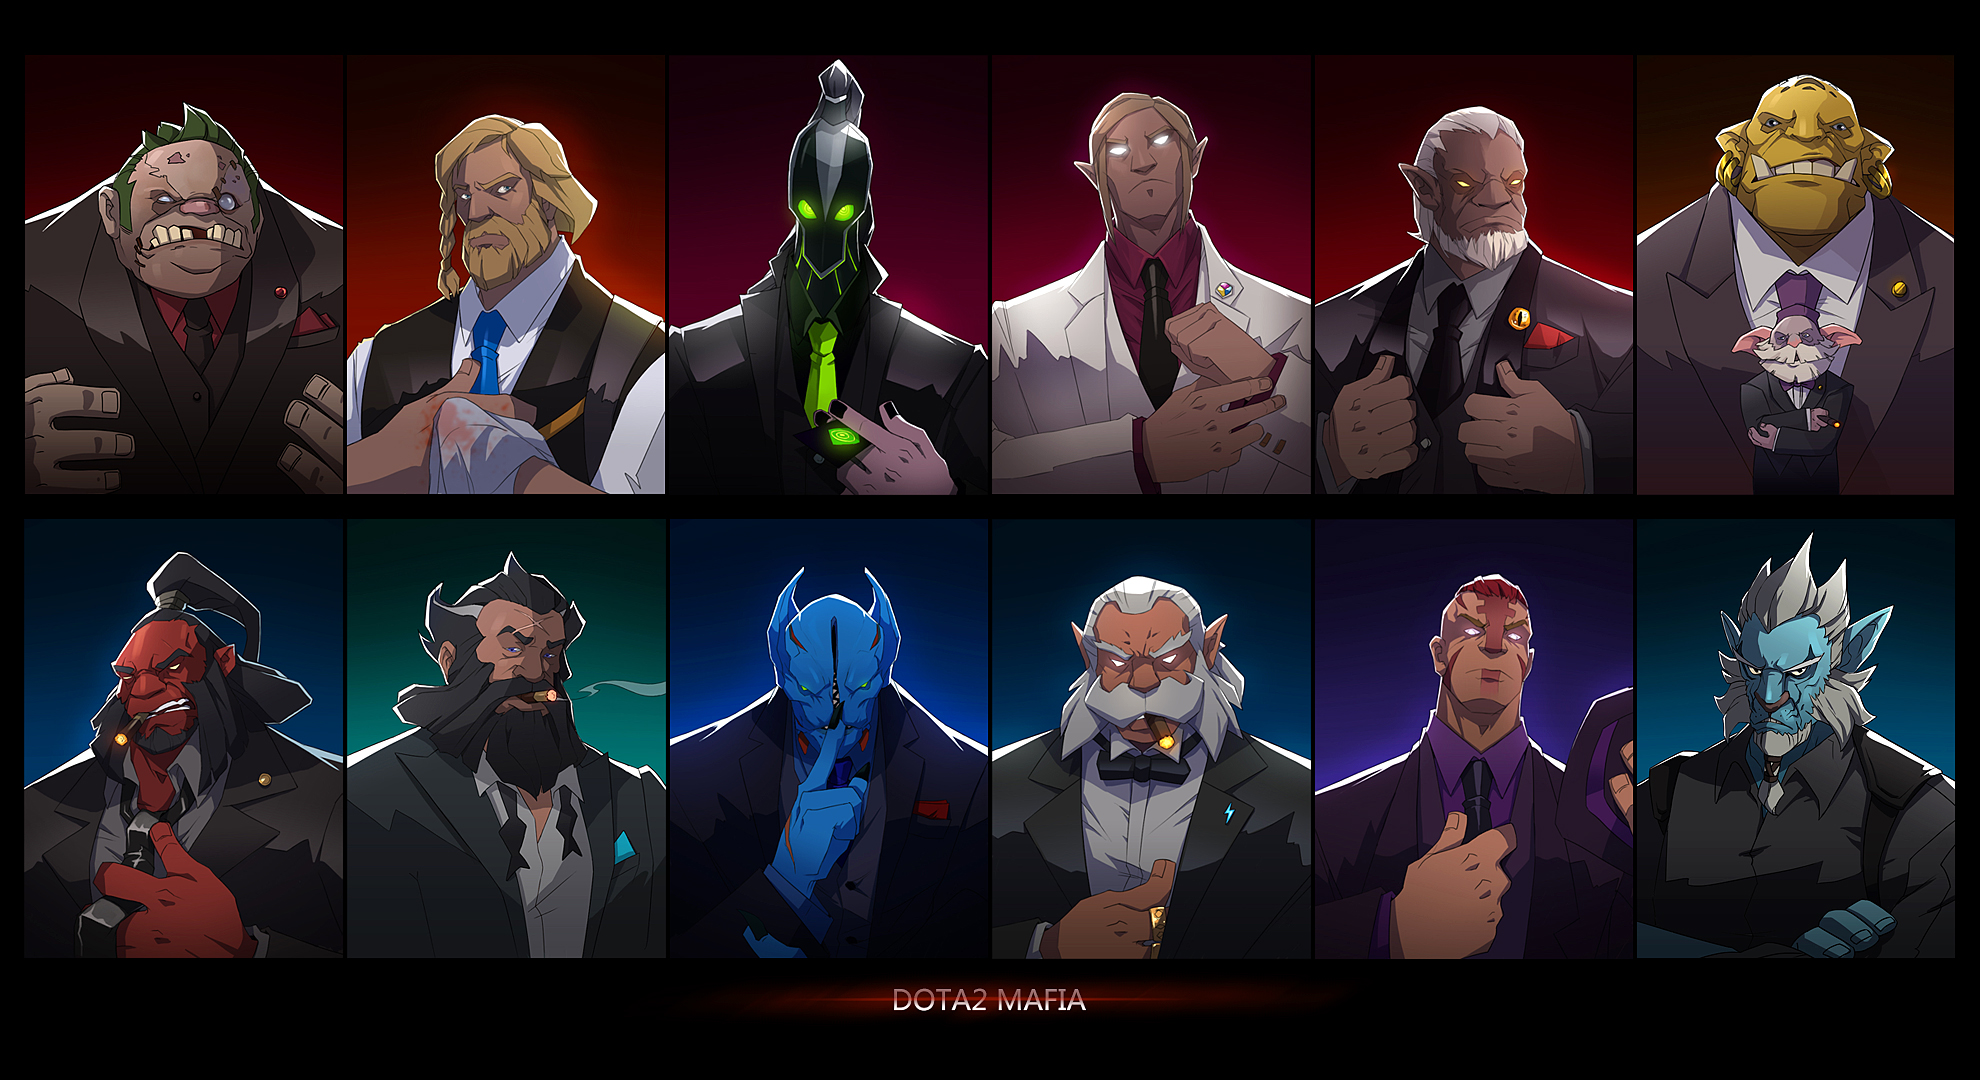 dota2 explore dota2 on deviantart